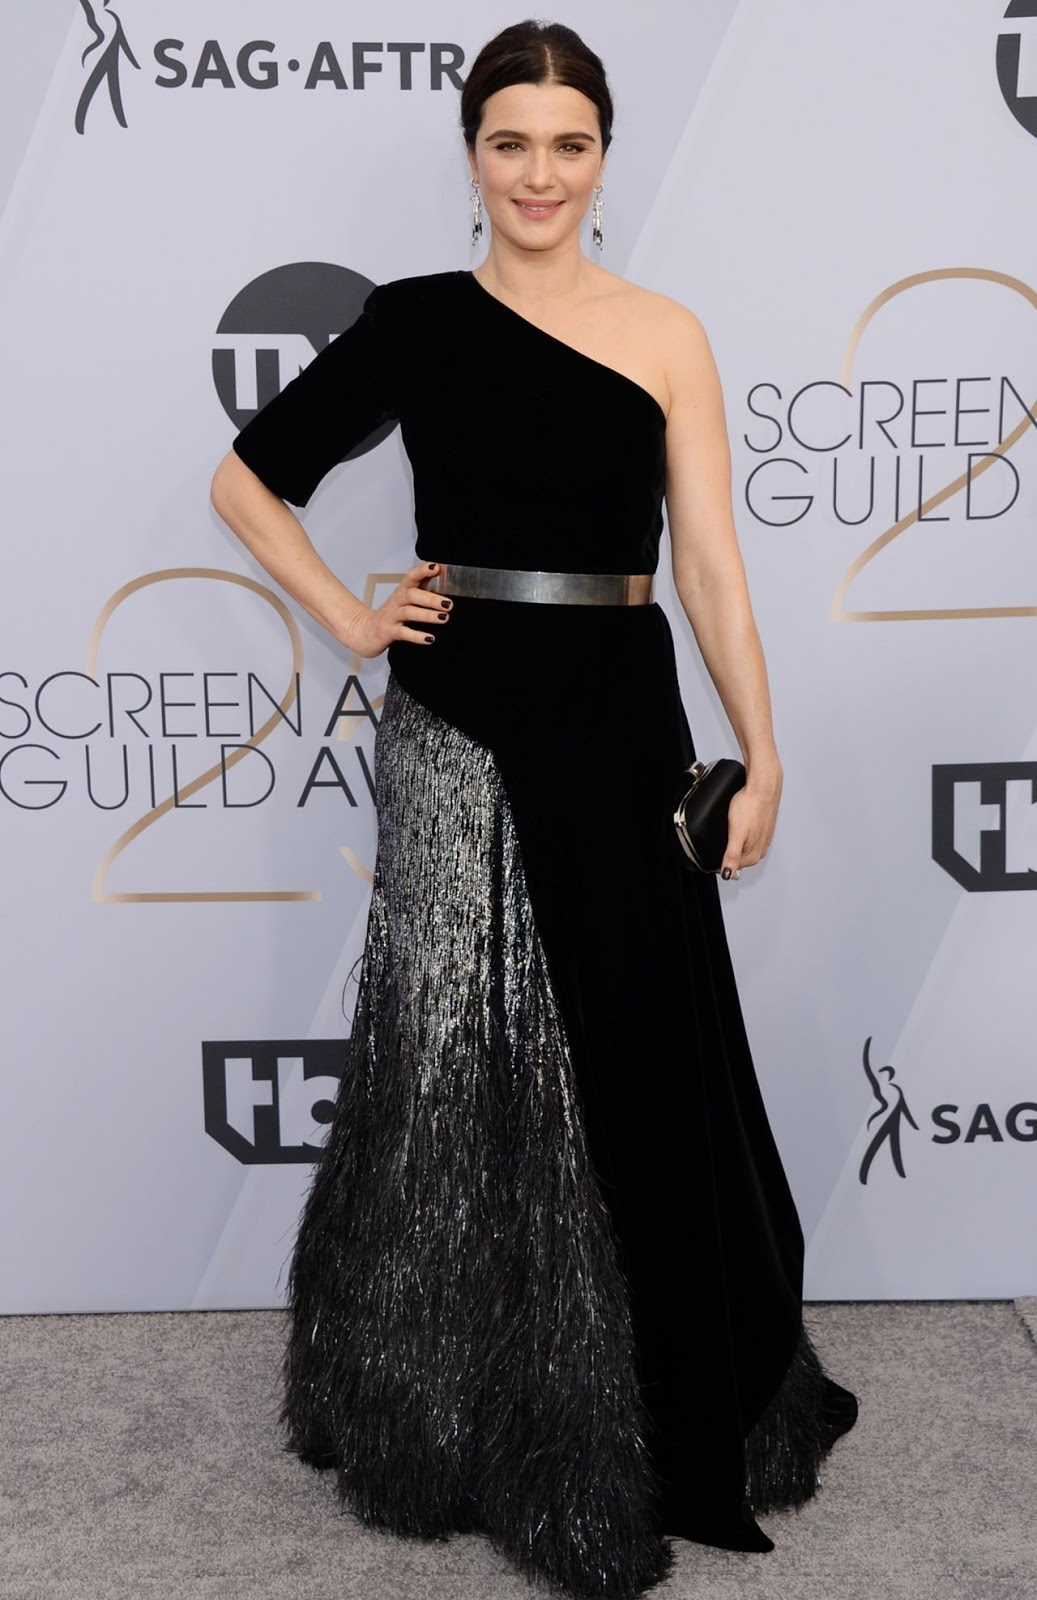 Rachel Weisz is a vision in Givenchy at the 2019 SAG Awards